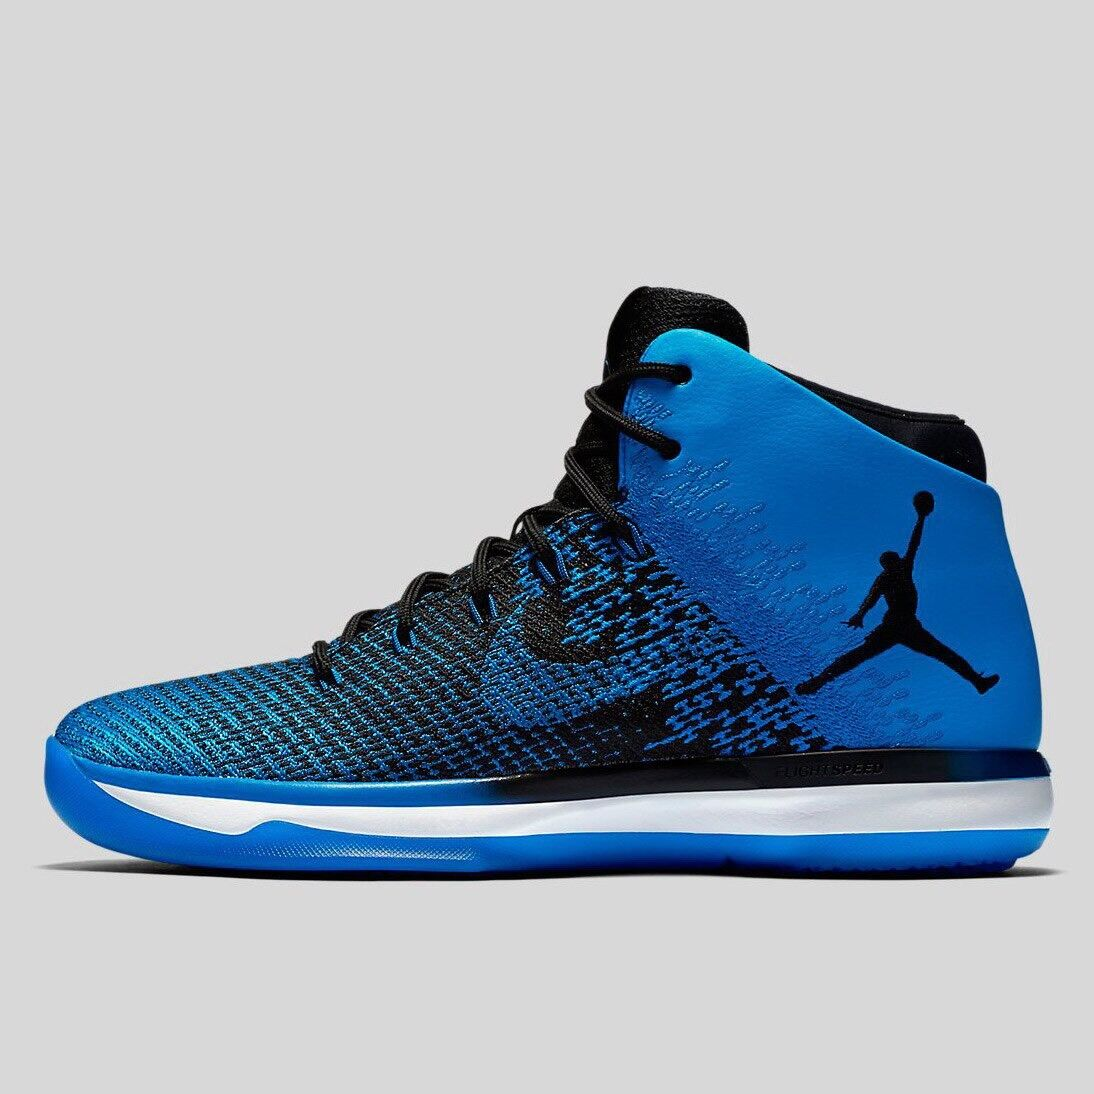 Nike Air Jordan 31 XXXI Game Royal Blue Kawhi Black 1 Kawhi Blue 845037-007 Men's Sz 11.5 ec7d63